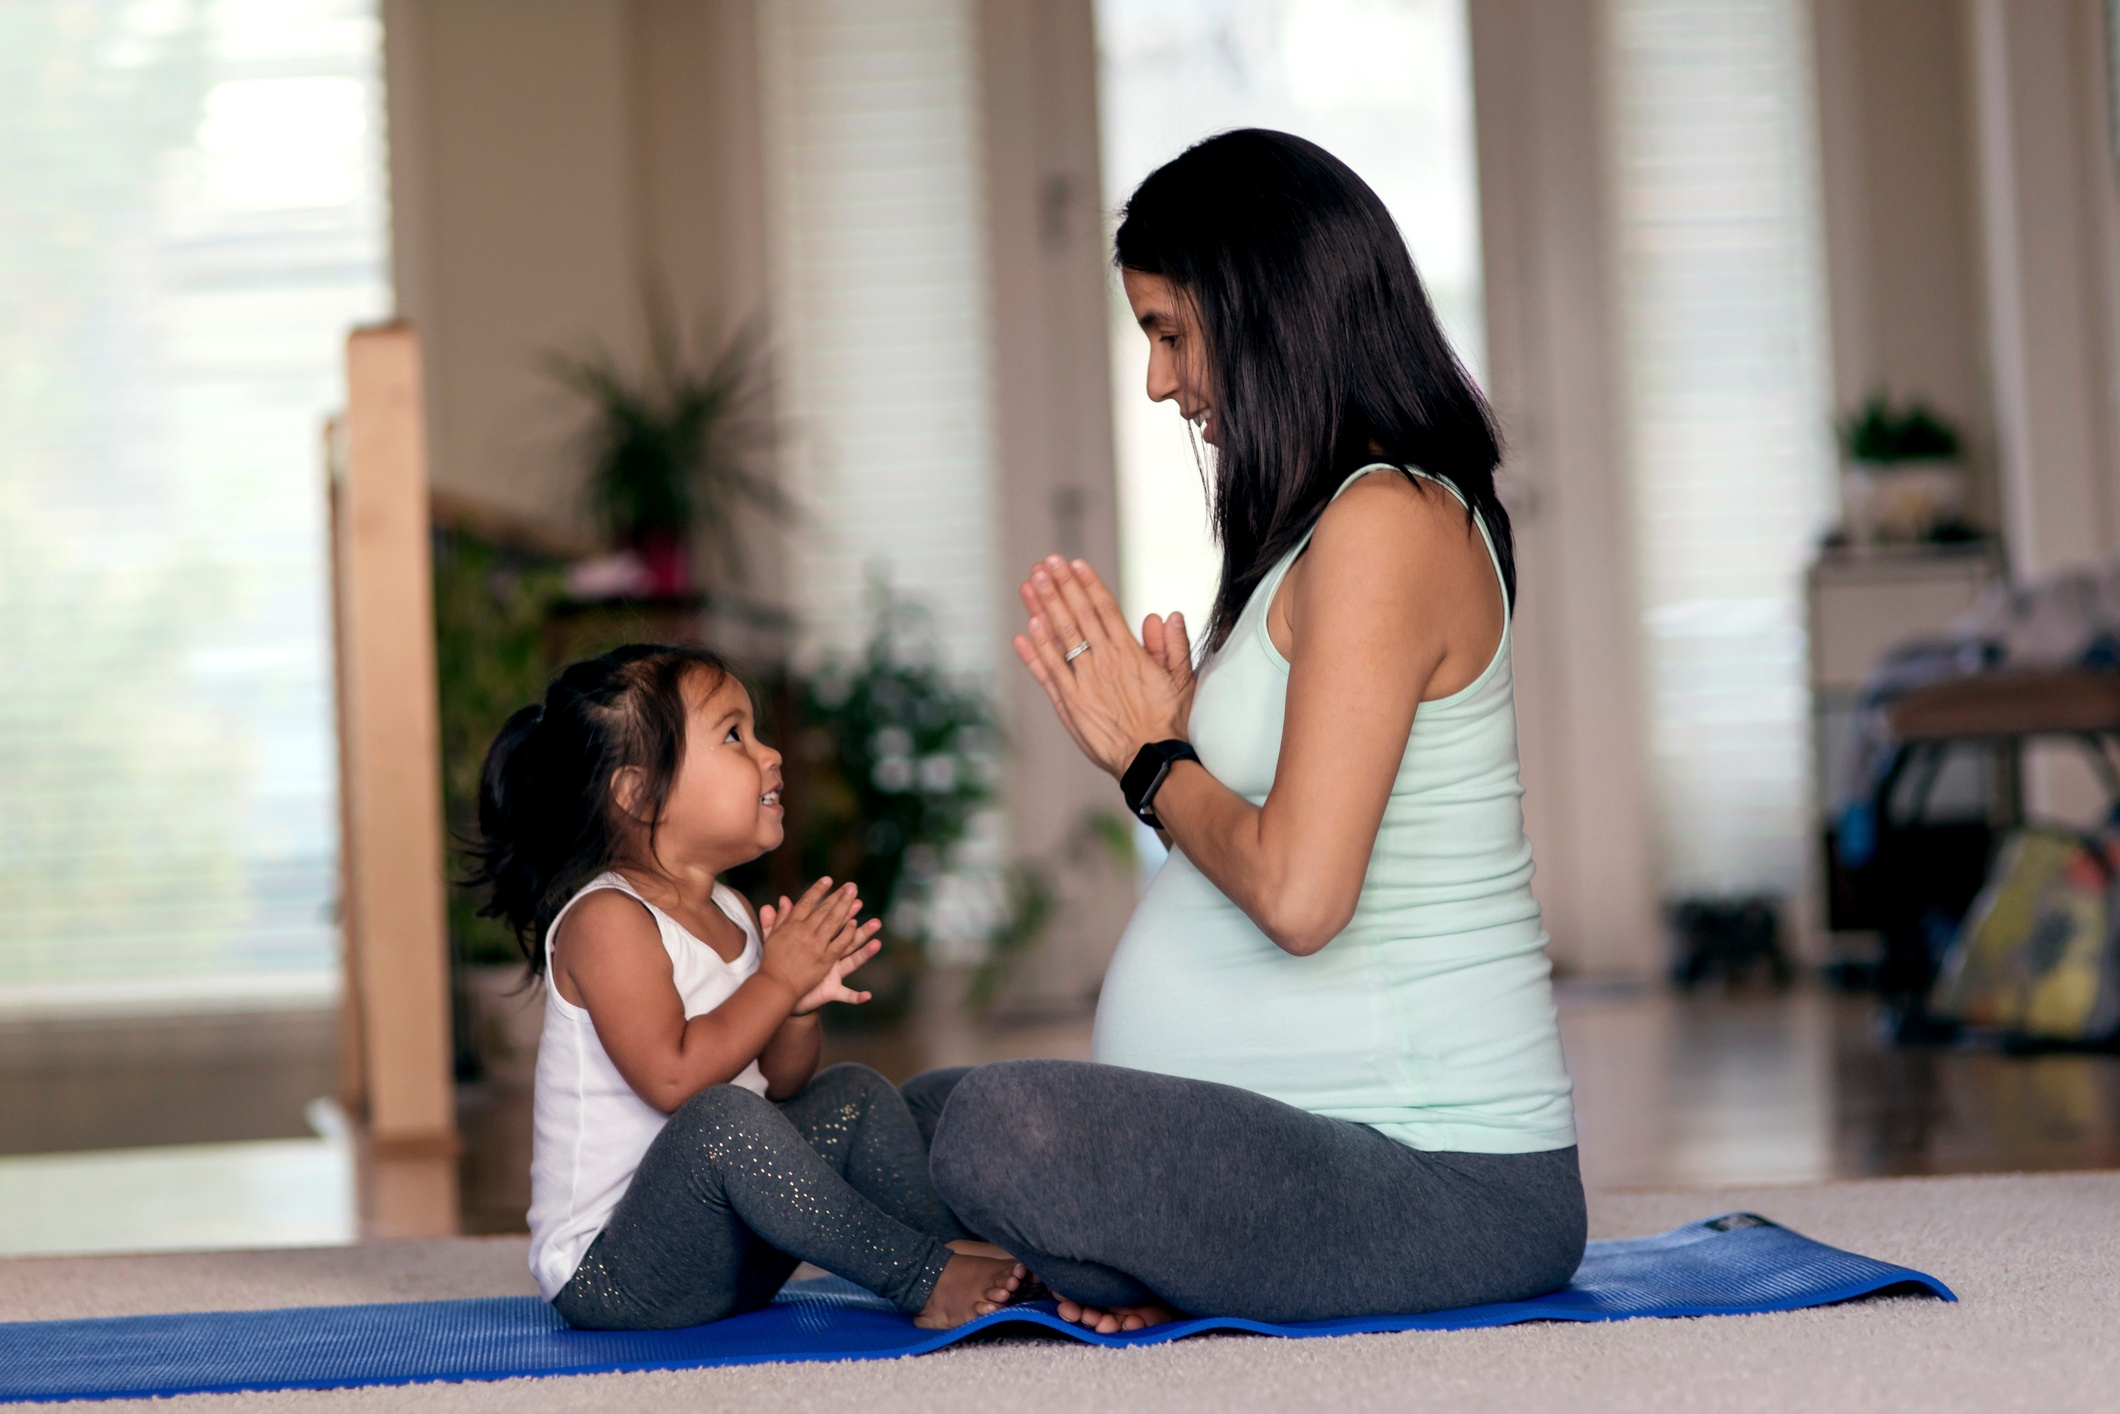 A mother and daughter meditating together on a yoga mat